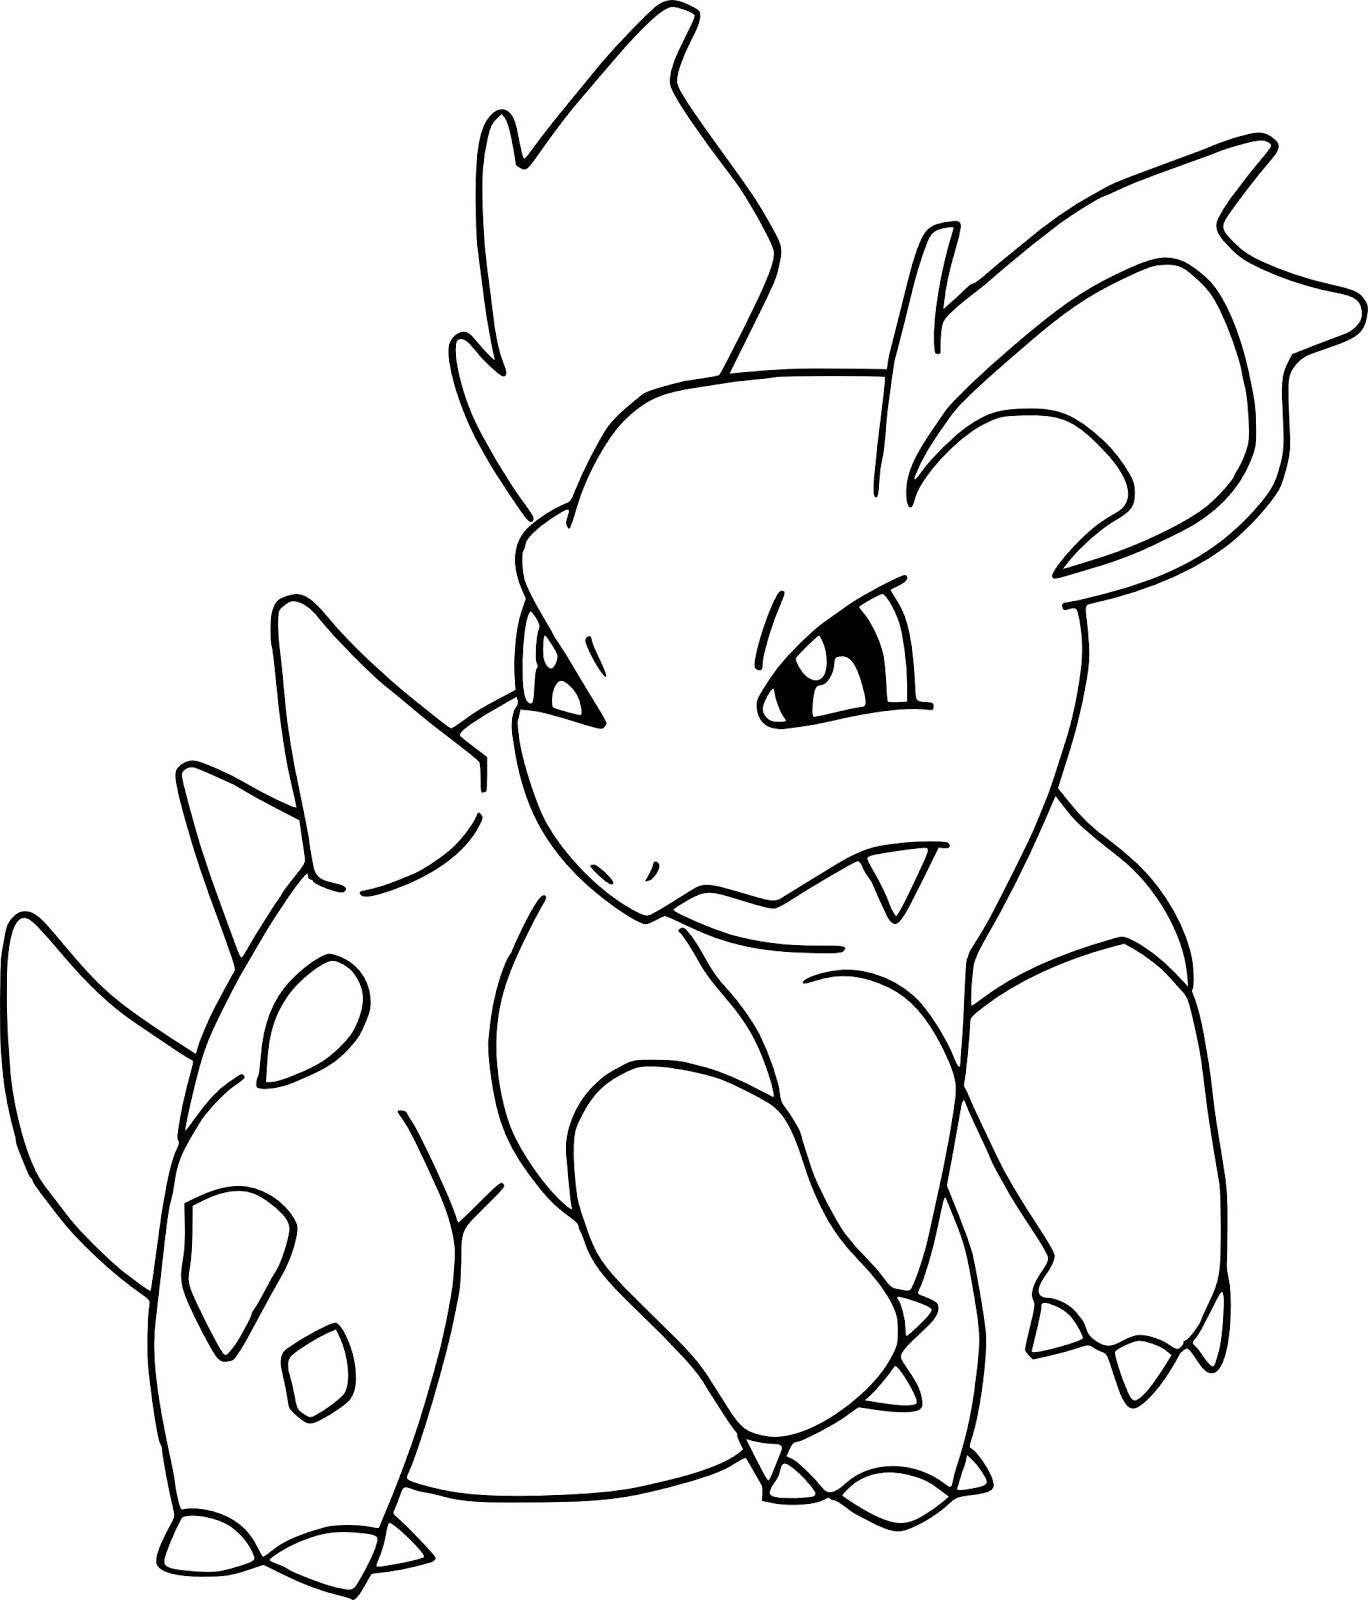 Nidorina Pokemon Coloring Pages For Kids Pokemon Coloring Pages Pokemon Coloring Coloring Pages